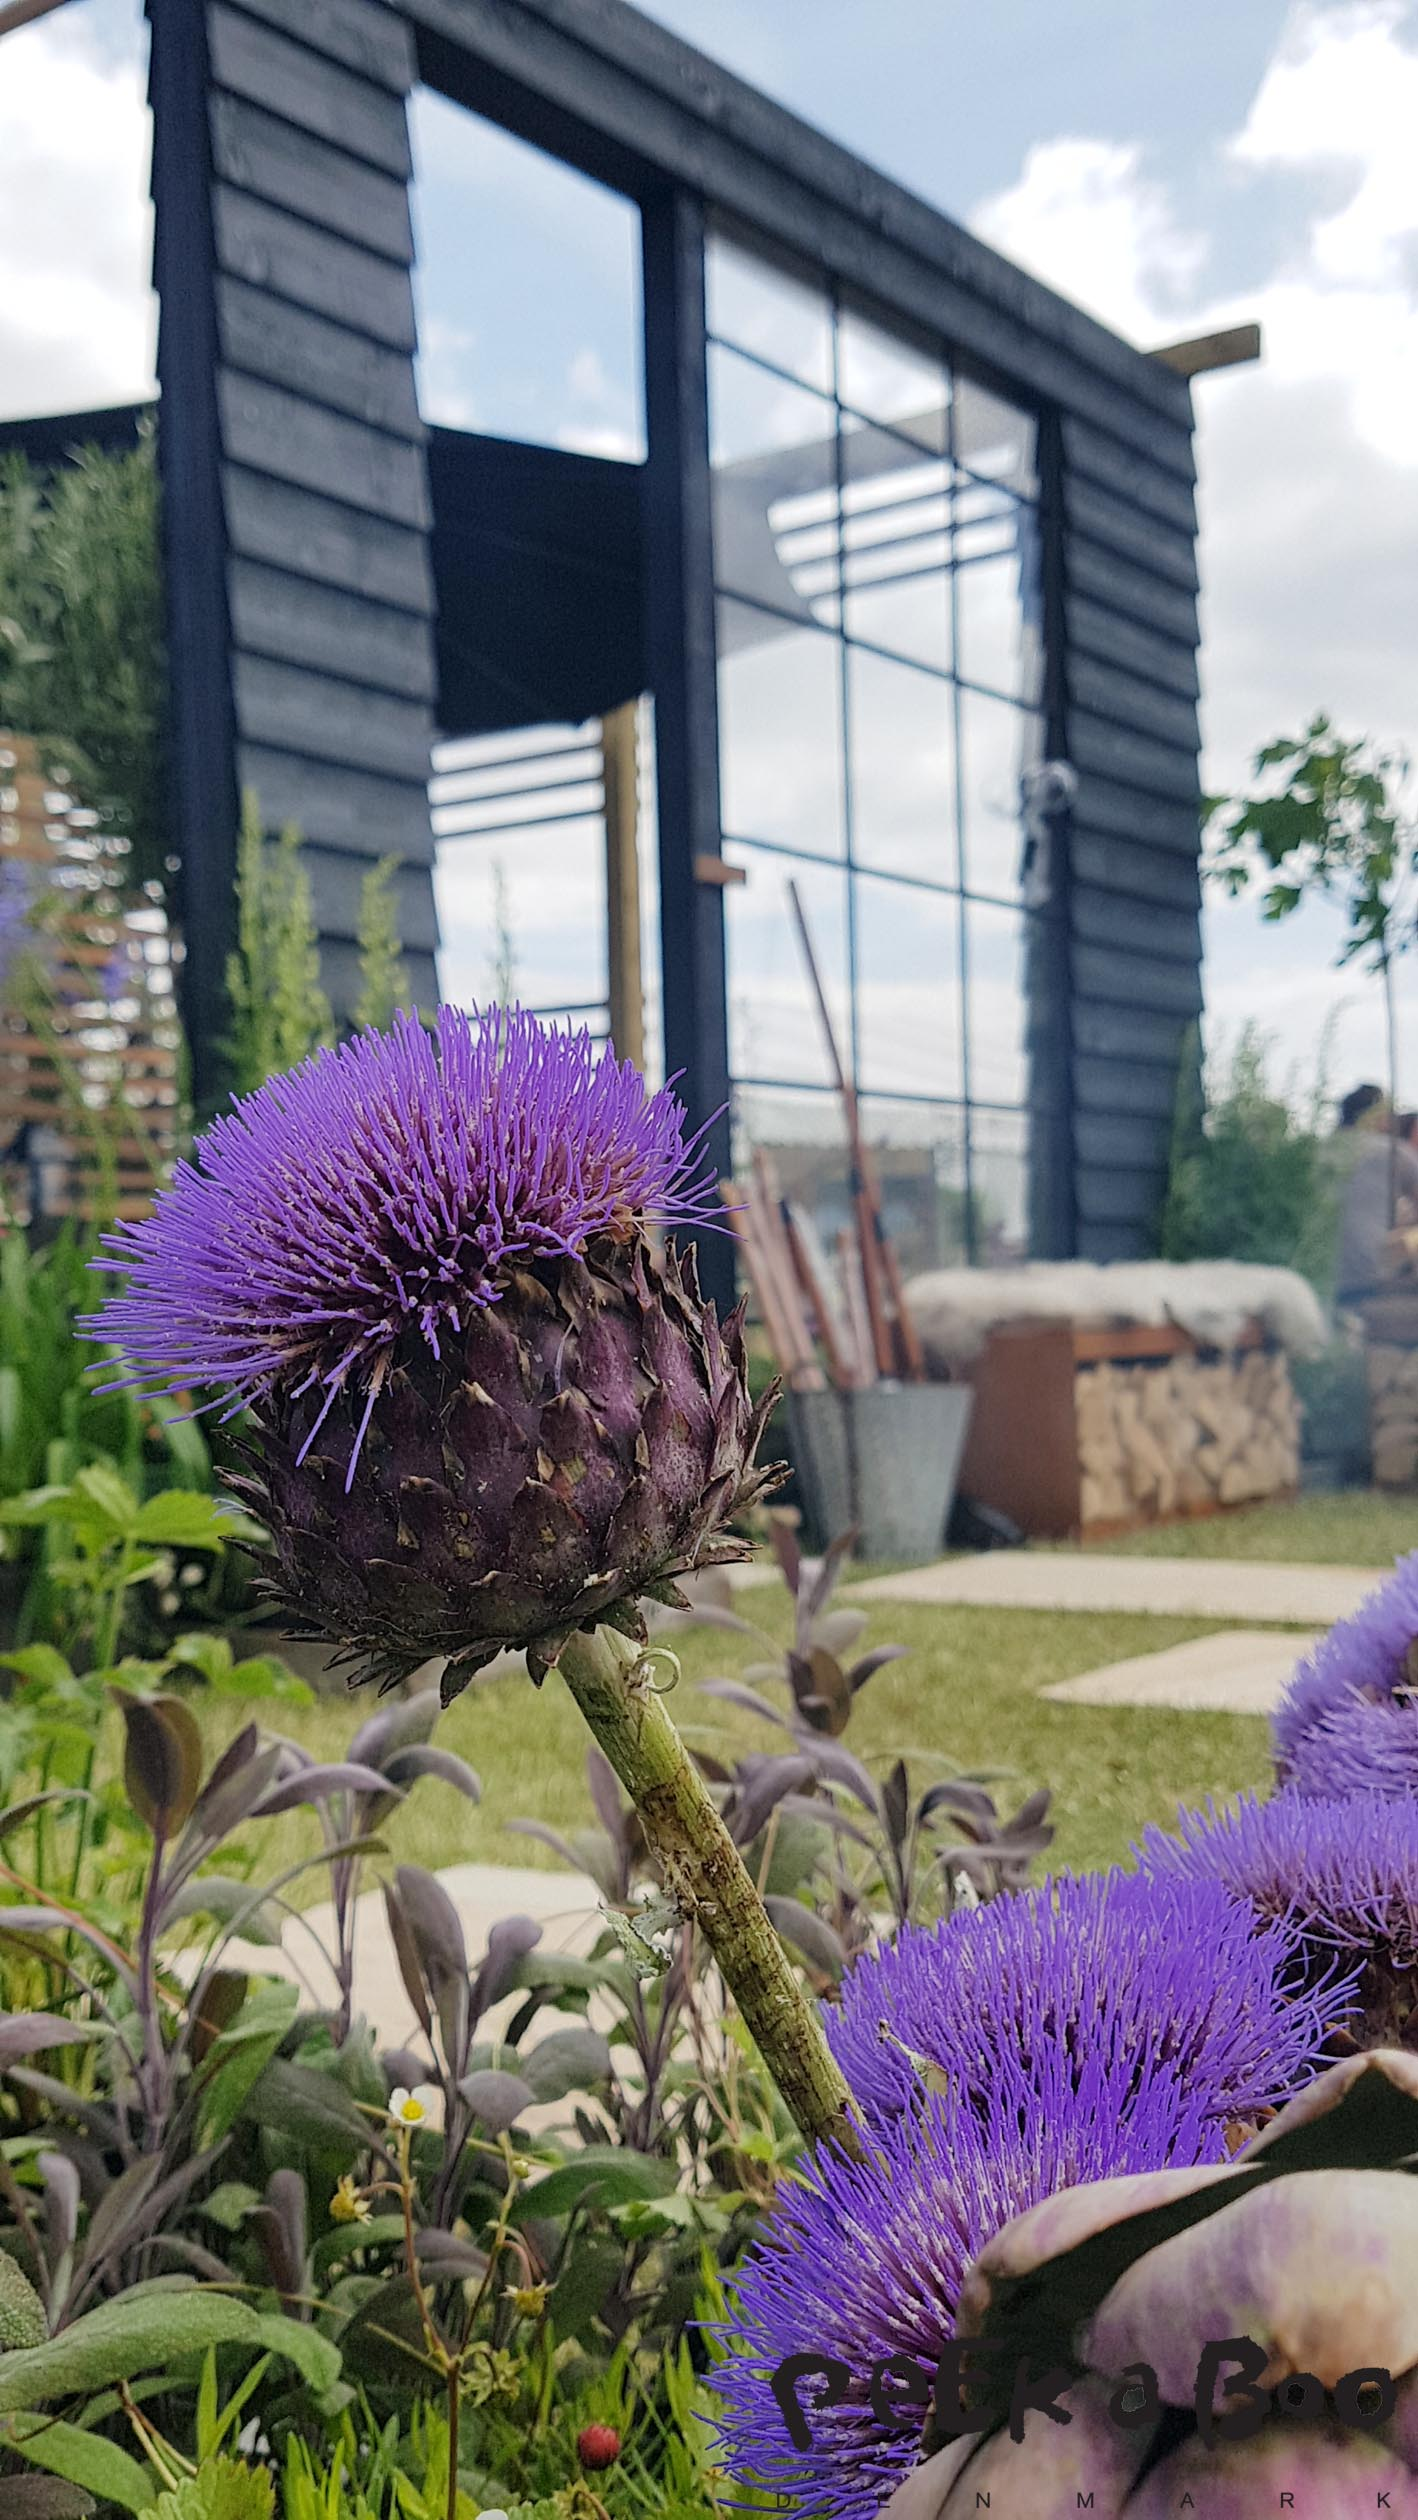 Artichoke in bloom. Now you will mix edible plants and flowers in your prayers, a trend of the CPH Garden show.